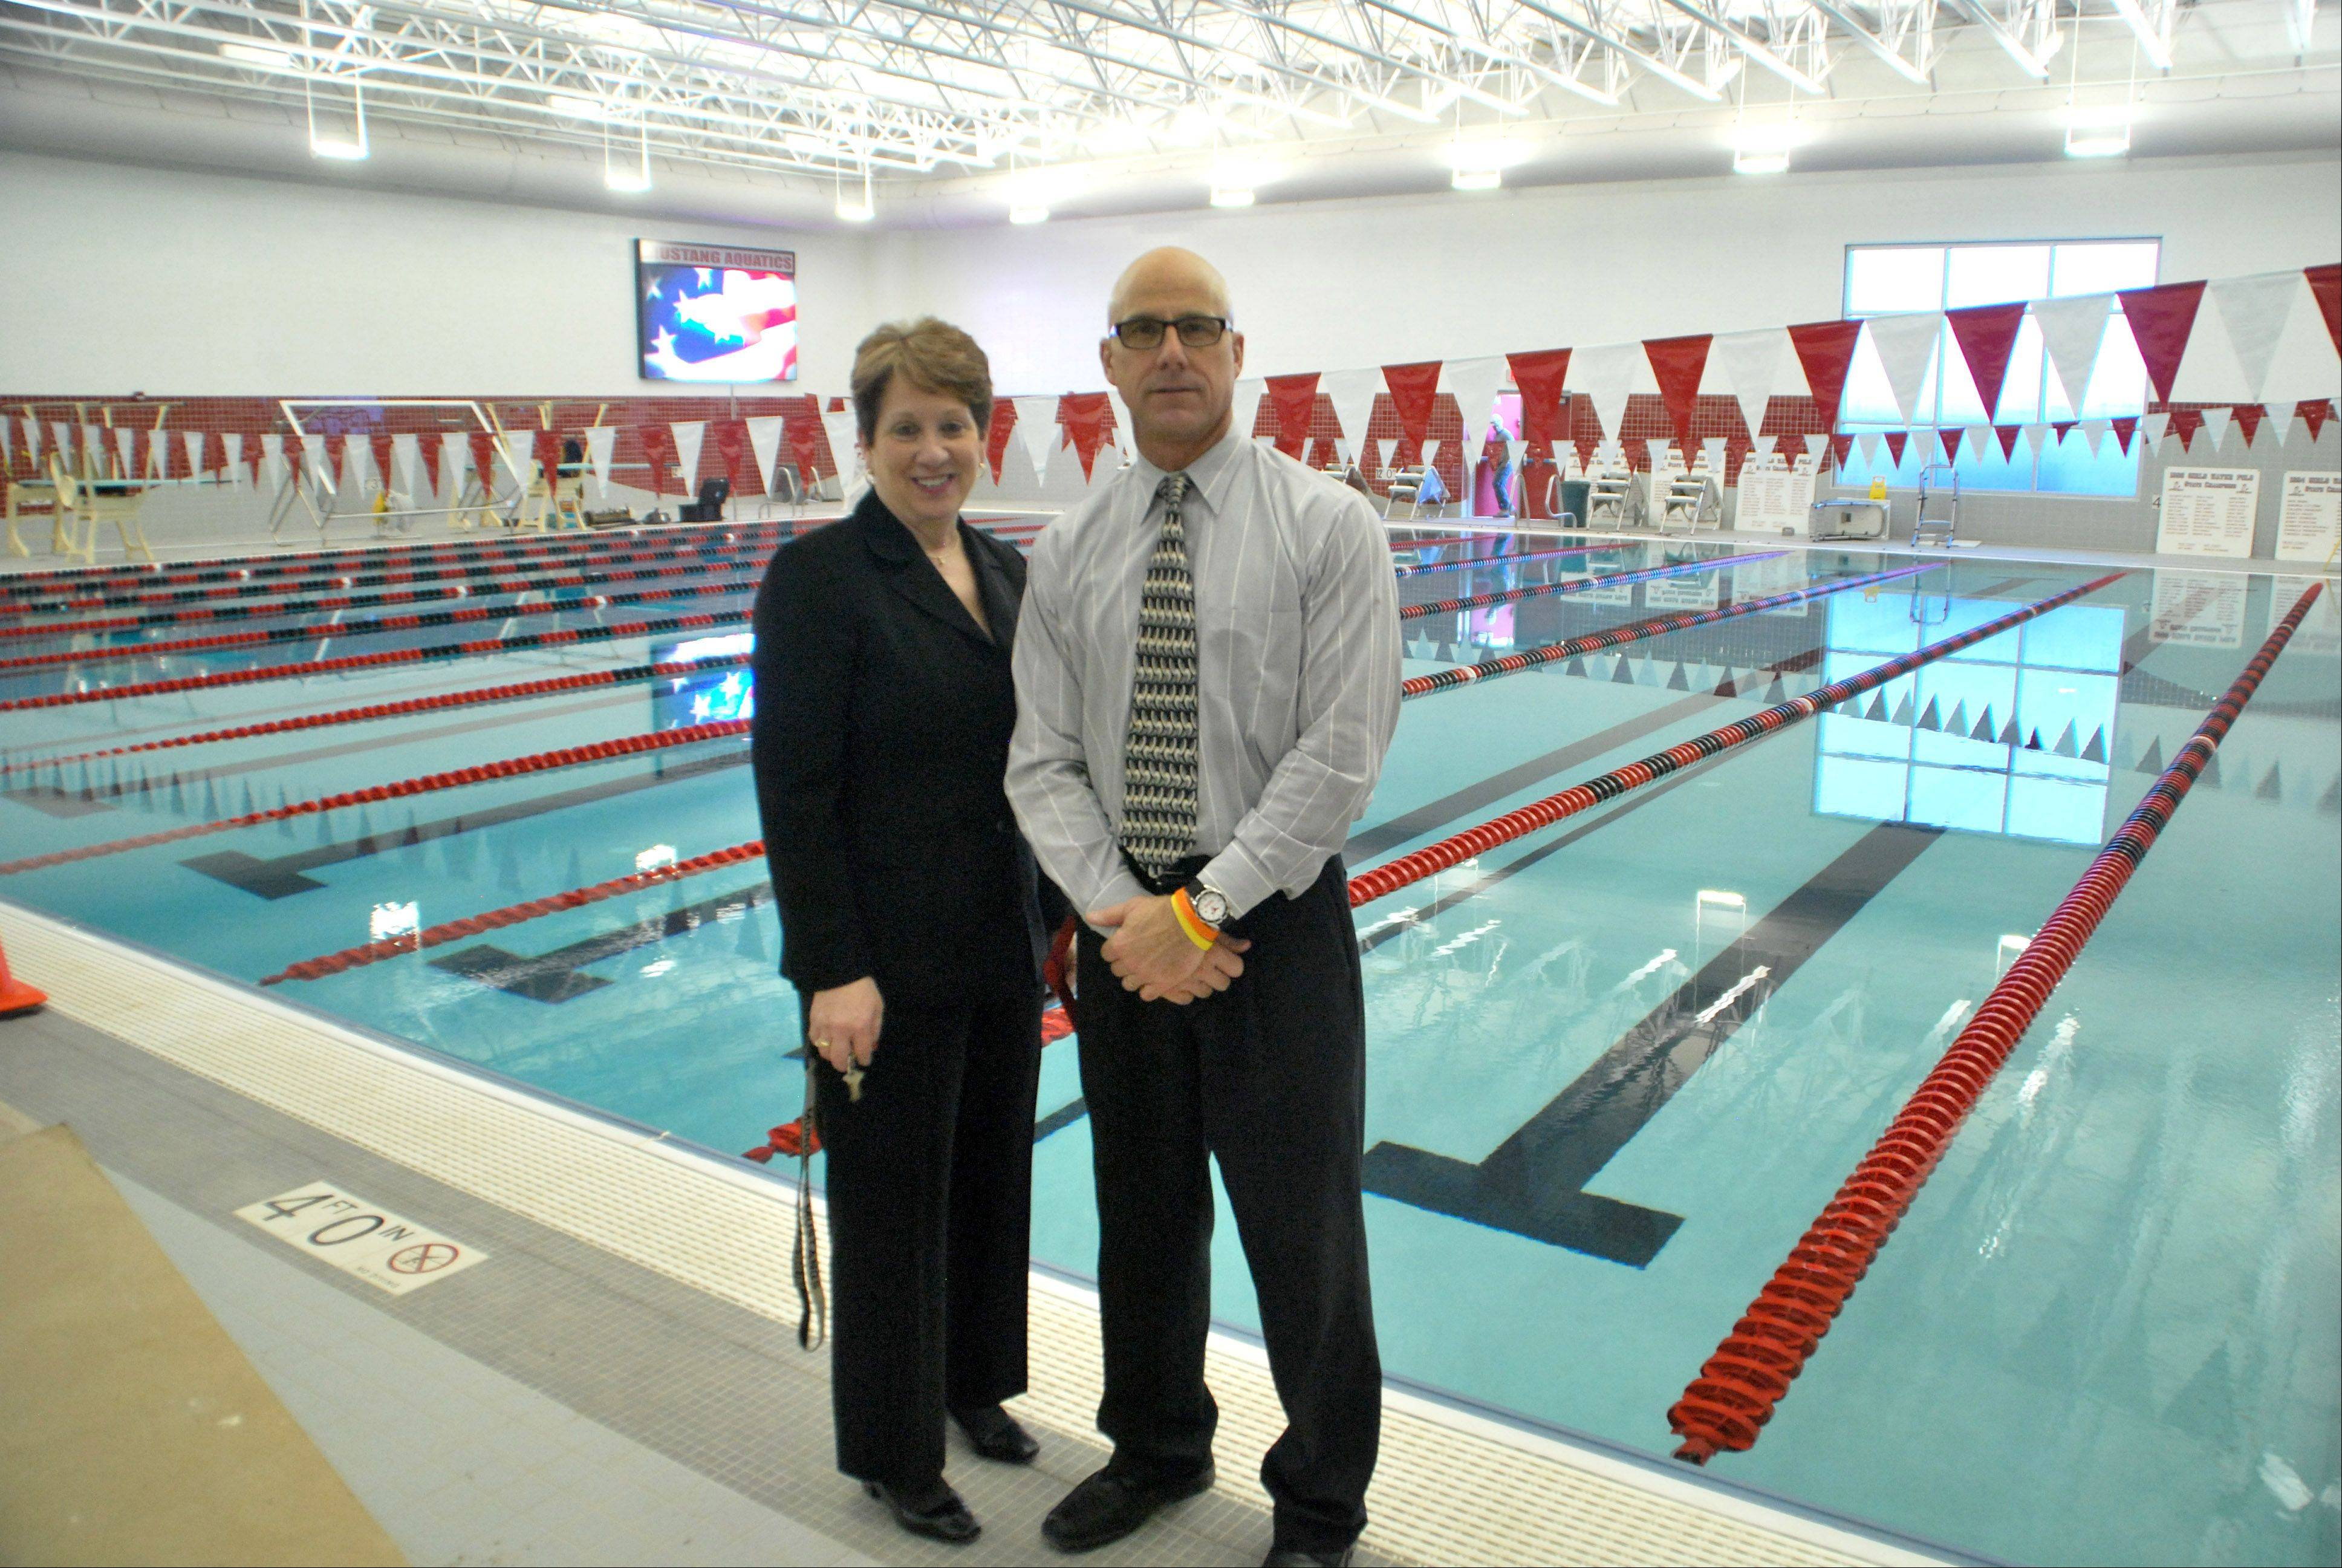 Superintendent Jody Ware and Athletic Director Perry Wilhelm at the Mundelein High School pool, after recent improvements.